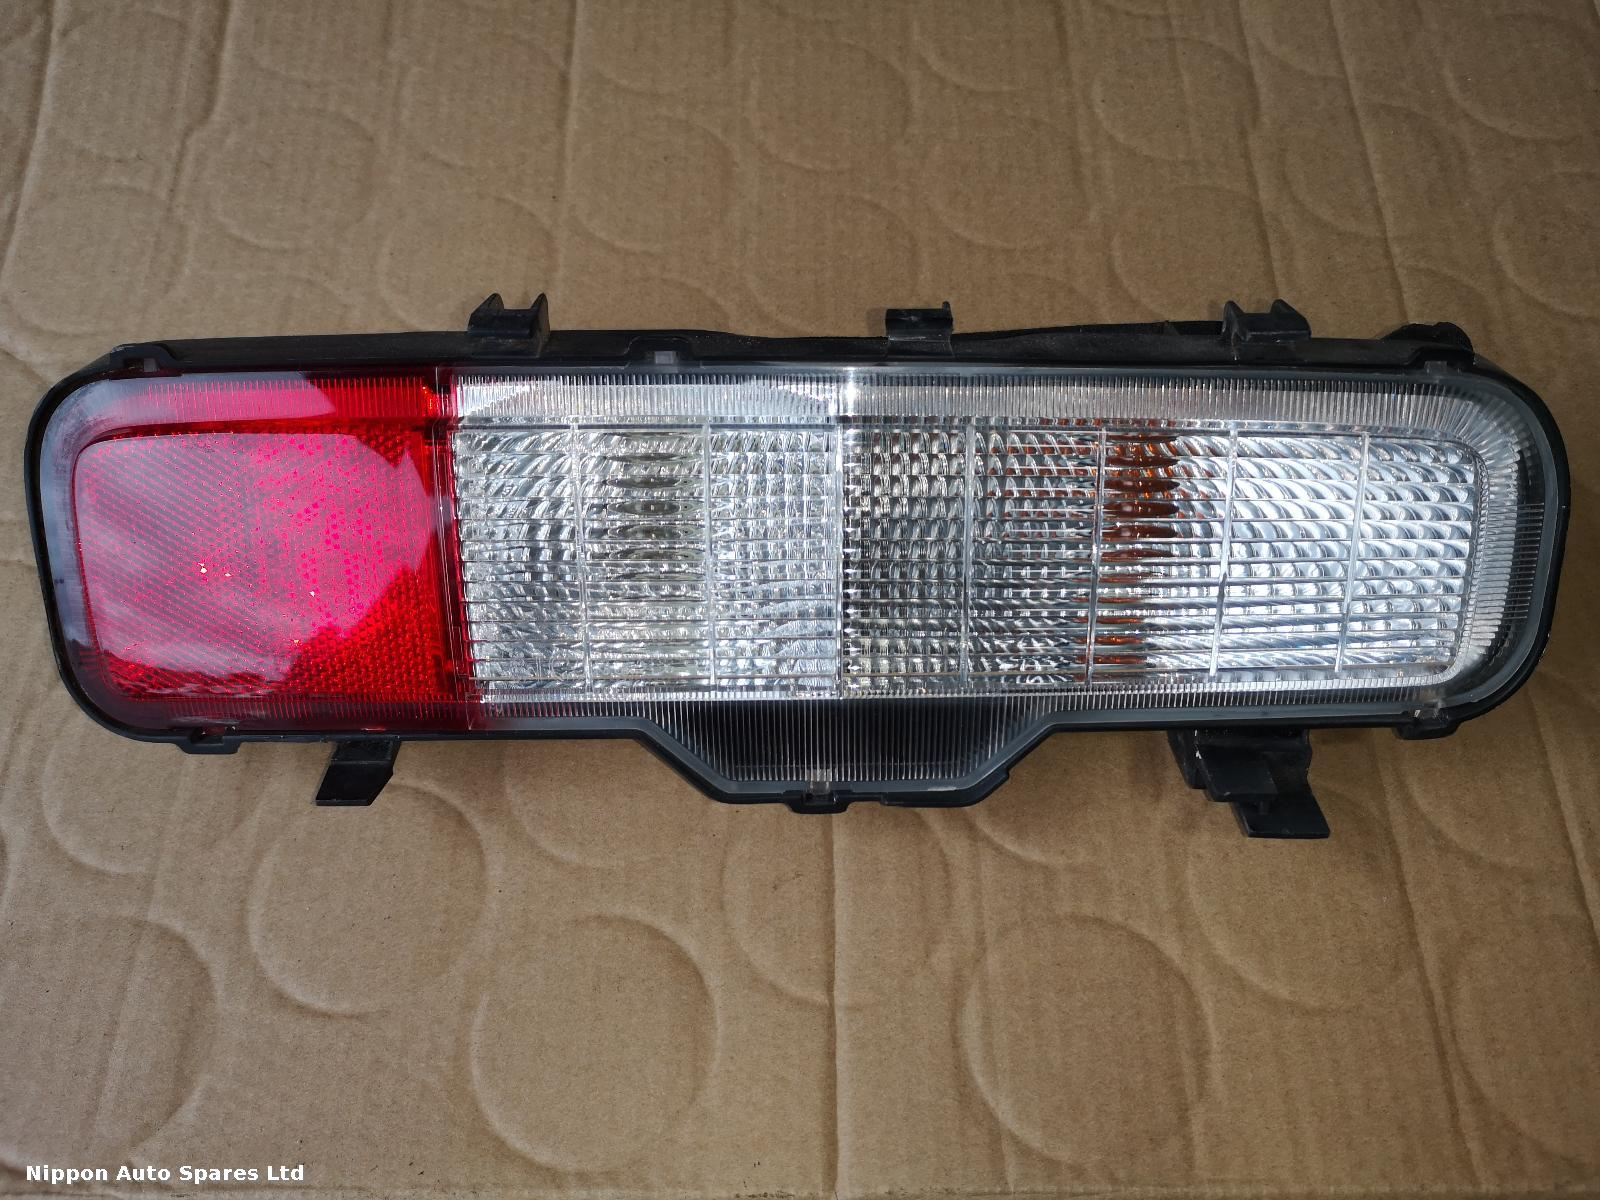 Nissan ELGRAND L Taillight PRE FACELIFT LOWER: 55115